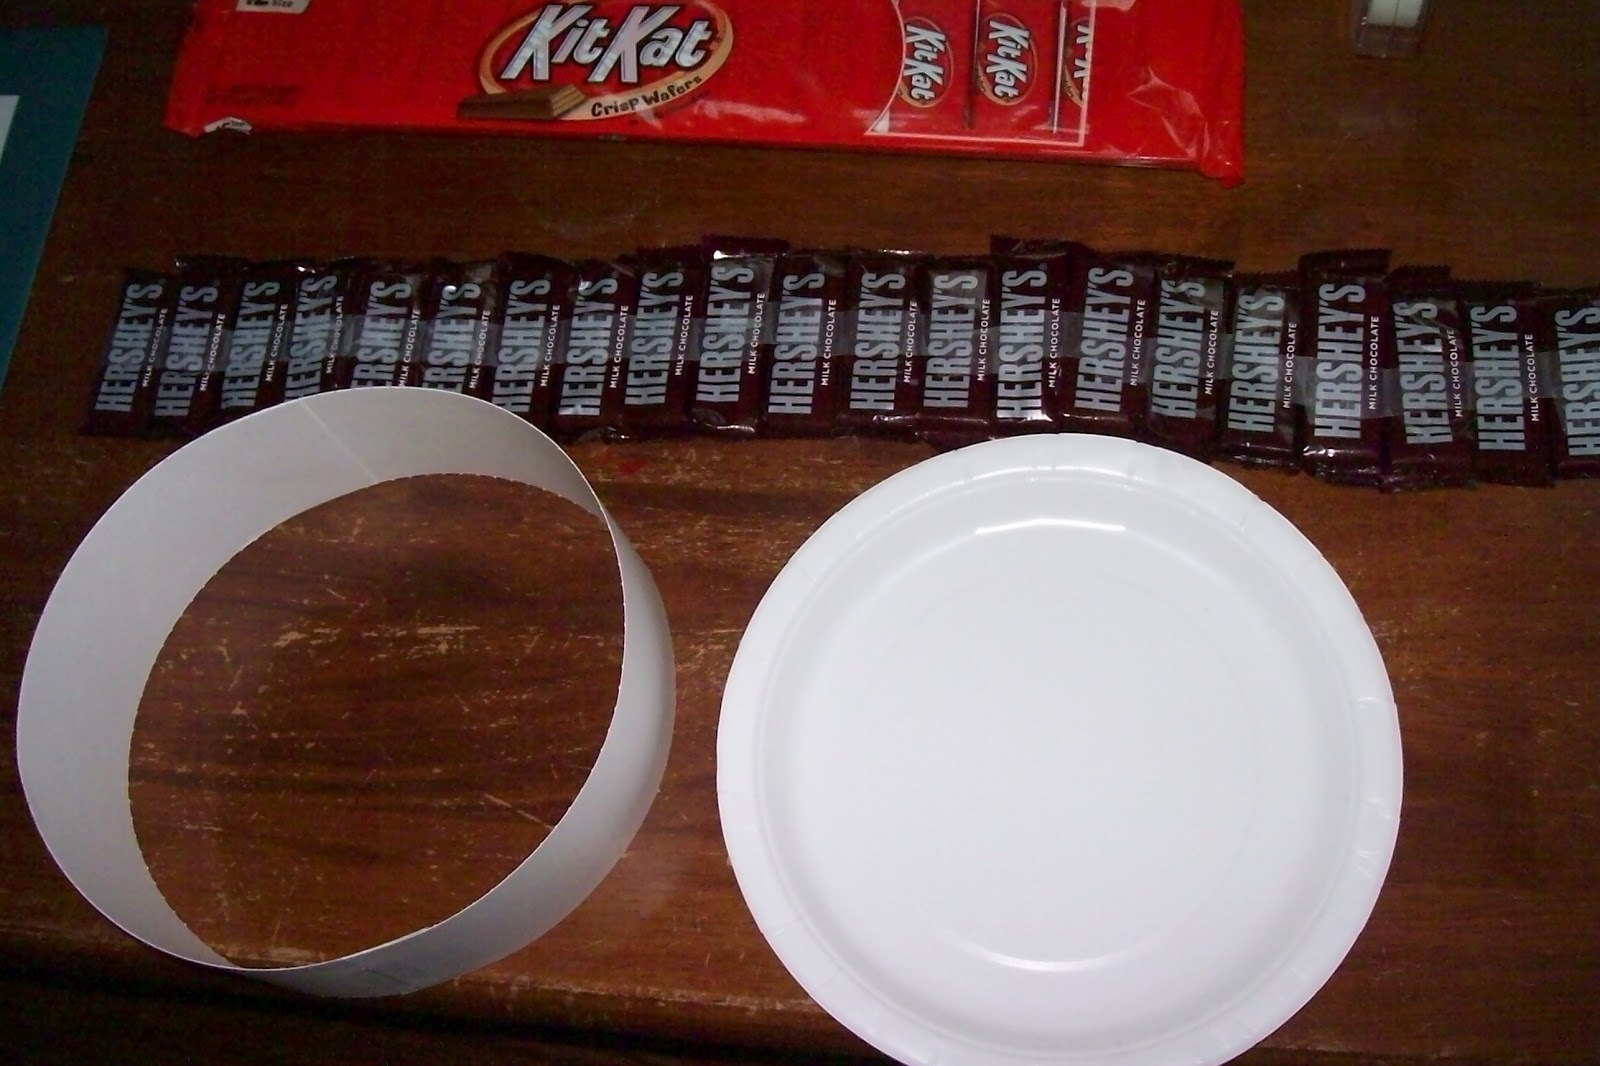 Then I took the paper support thatu0027s included in the Hershey bar packaging and rolled it to make a circle - it took 2 of the paper supports. & Candy Cake and Crafts: Chocolate Candy Cake - Picture Tutorial